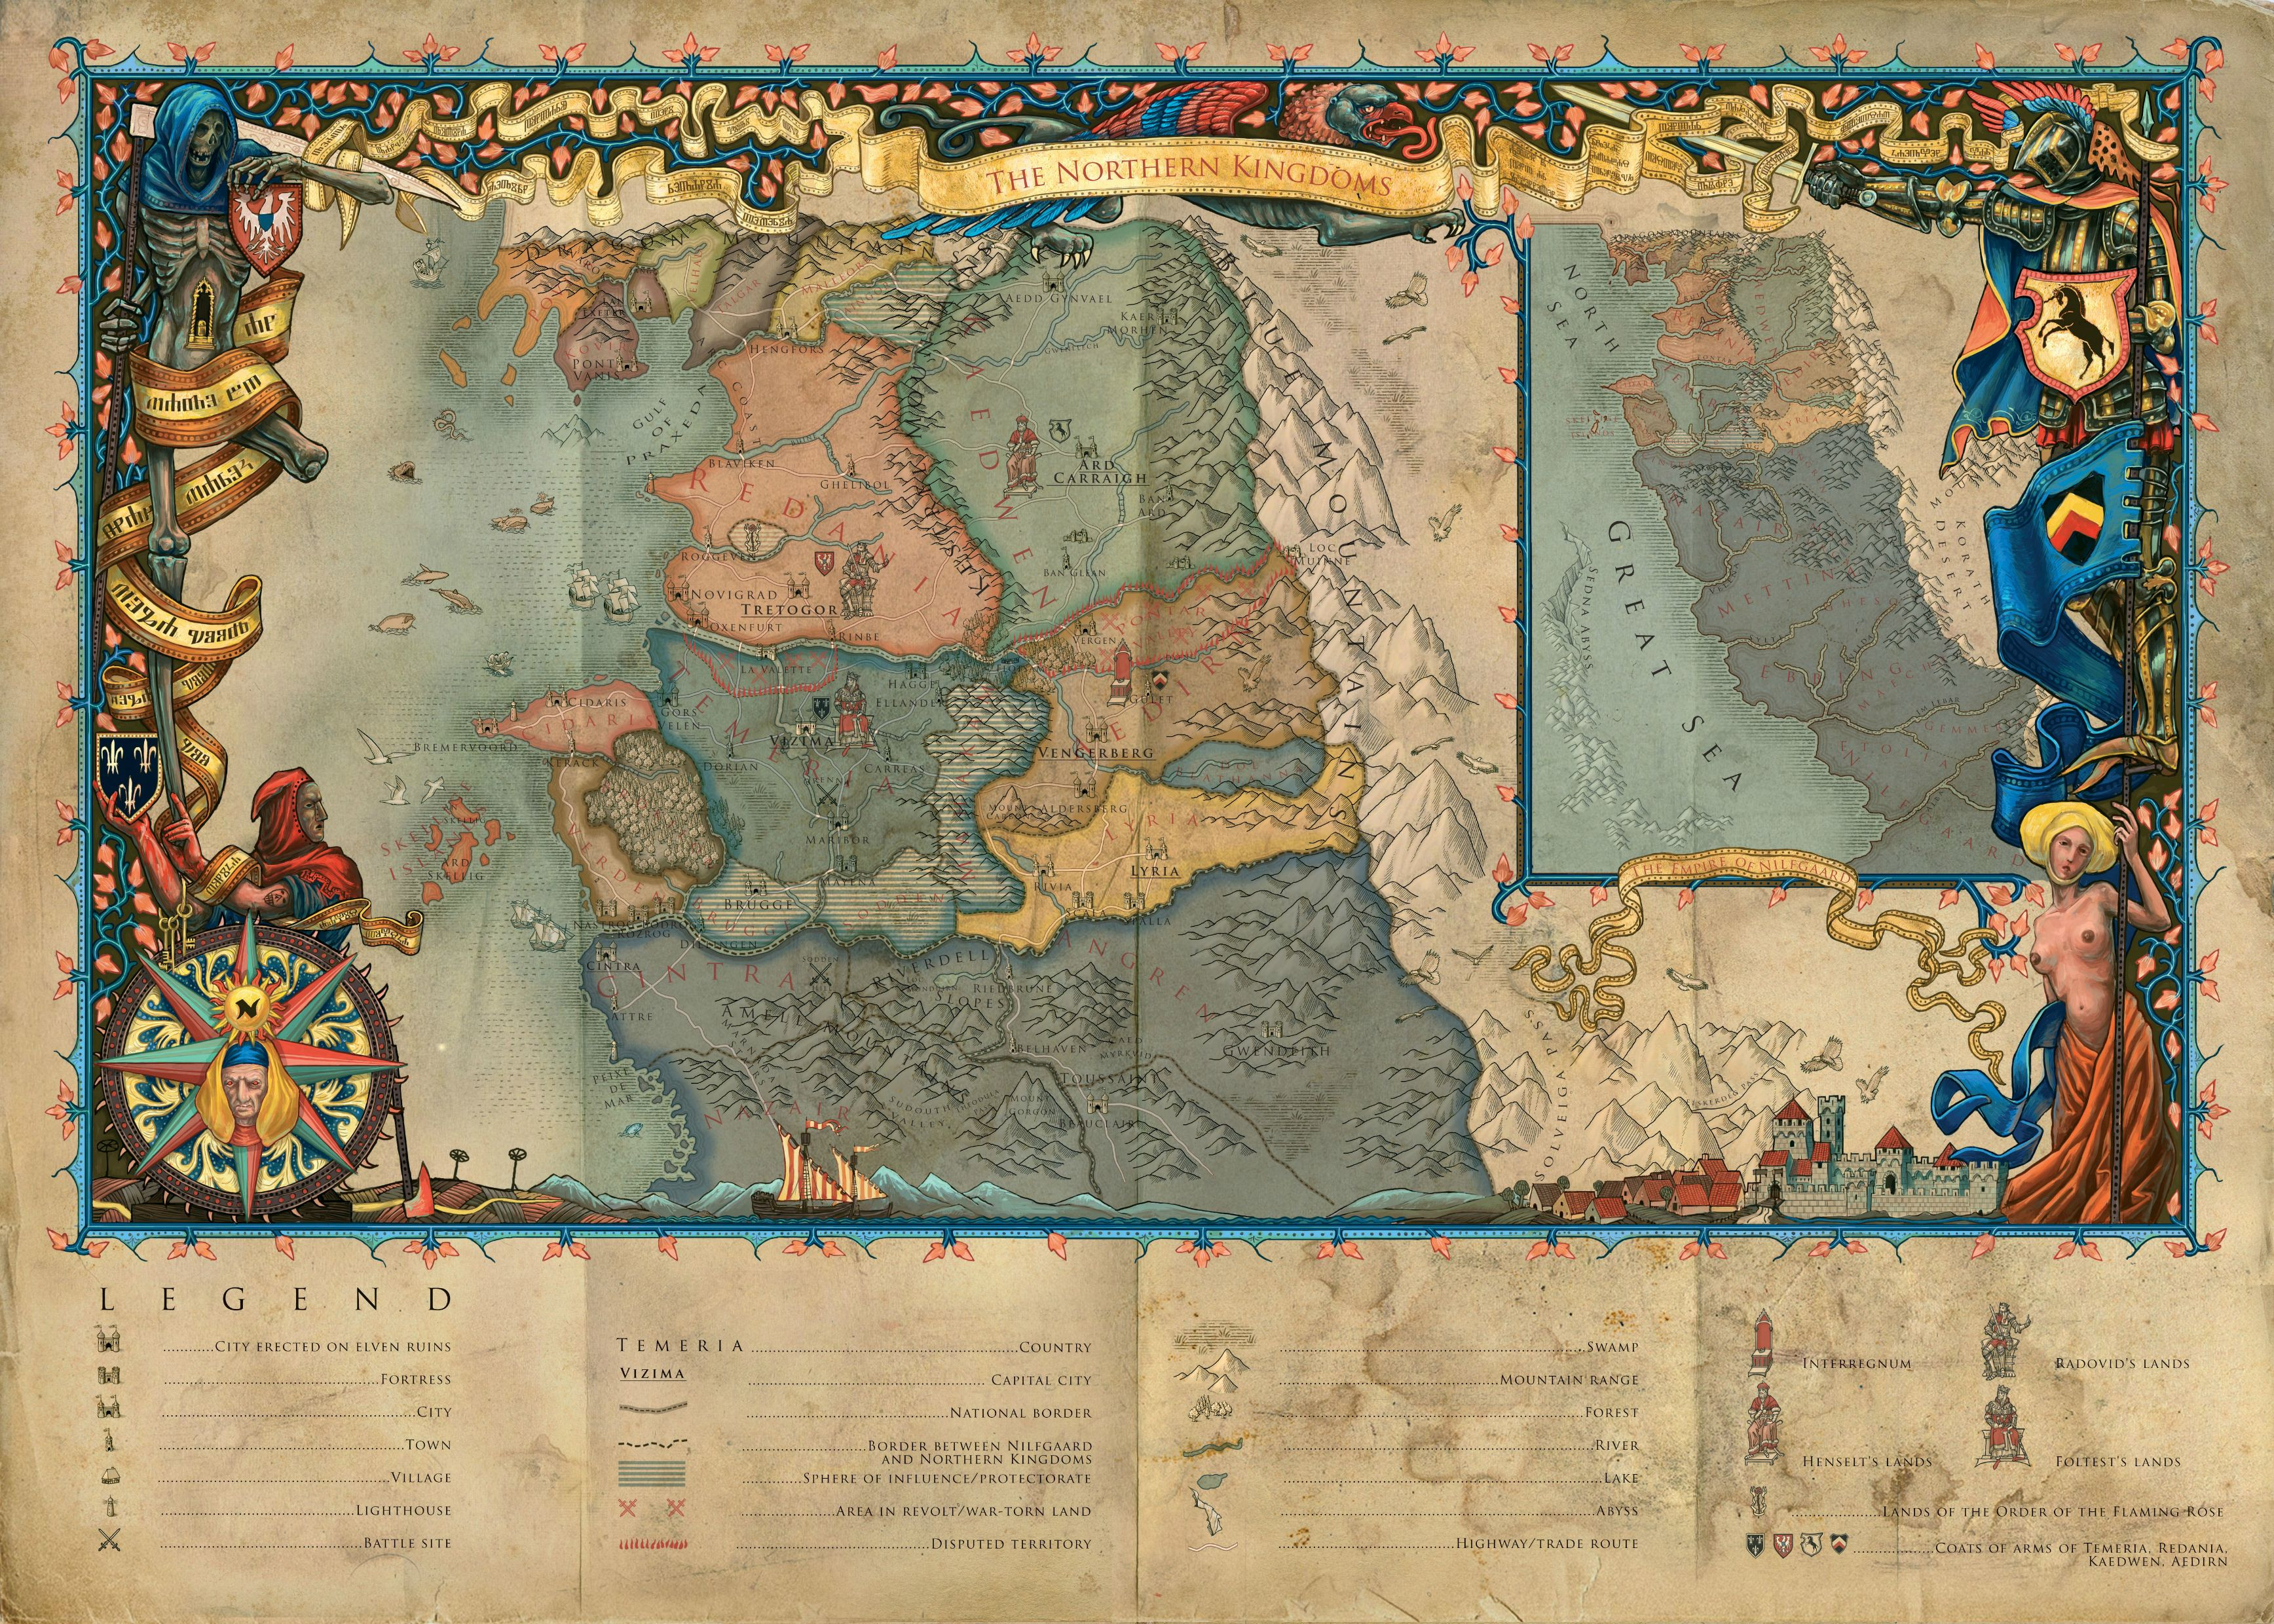 Witcher 3 Printable Maps New Is There A Plete Map Of The World Of The Witcher E That Shows